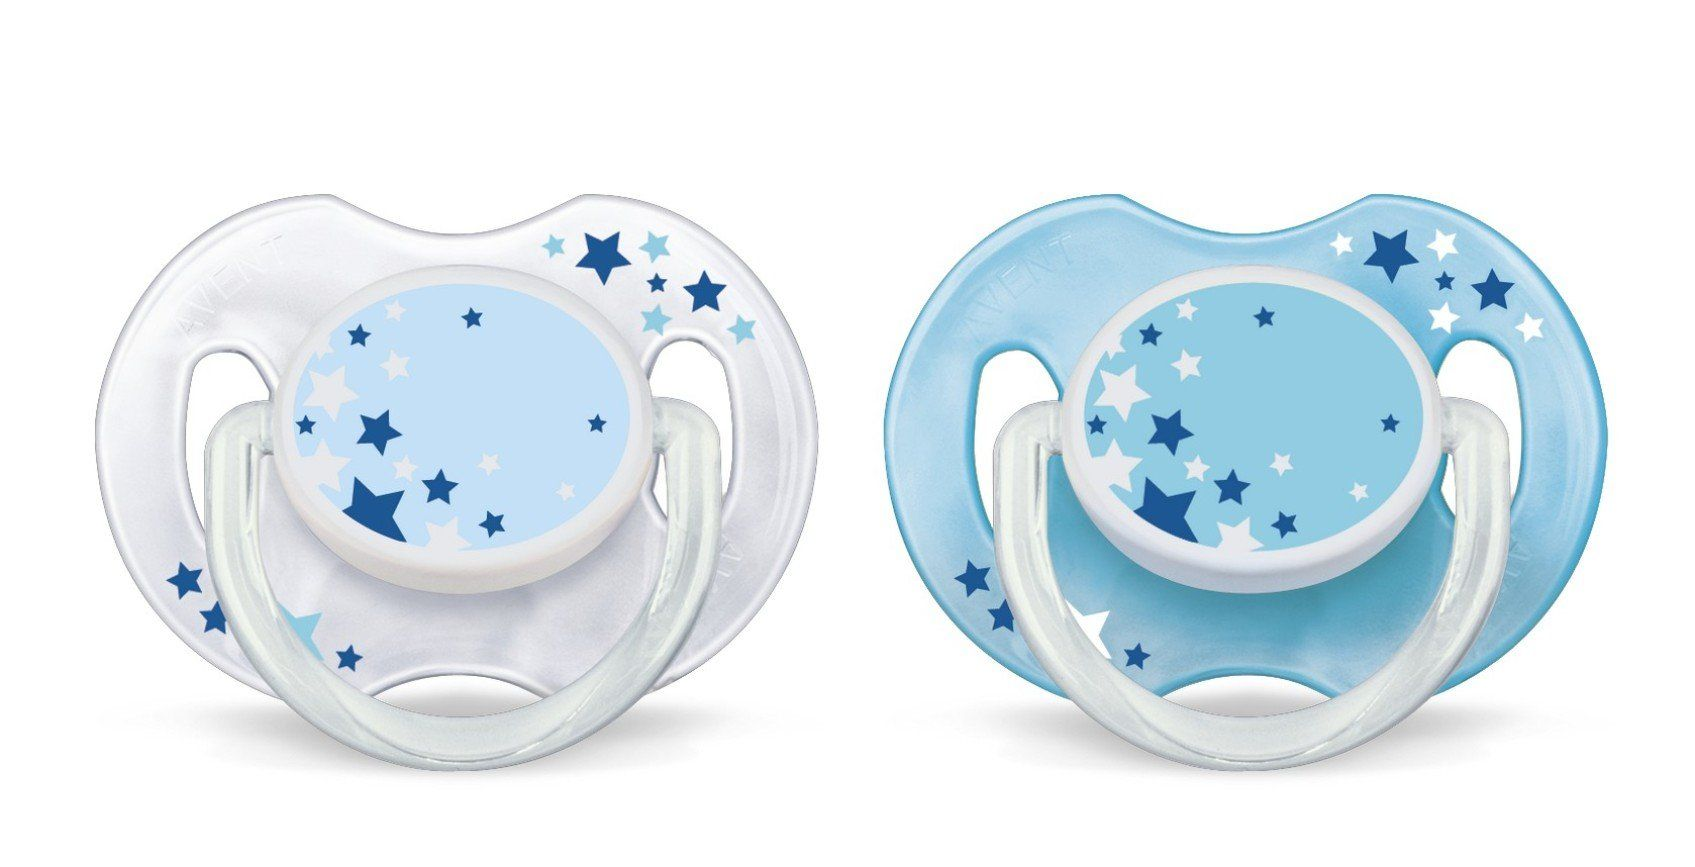 Philips AVENT SCF176//18 Glow in the Dark Night-Time Soother 0-6 Months